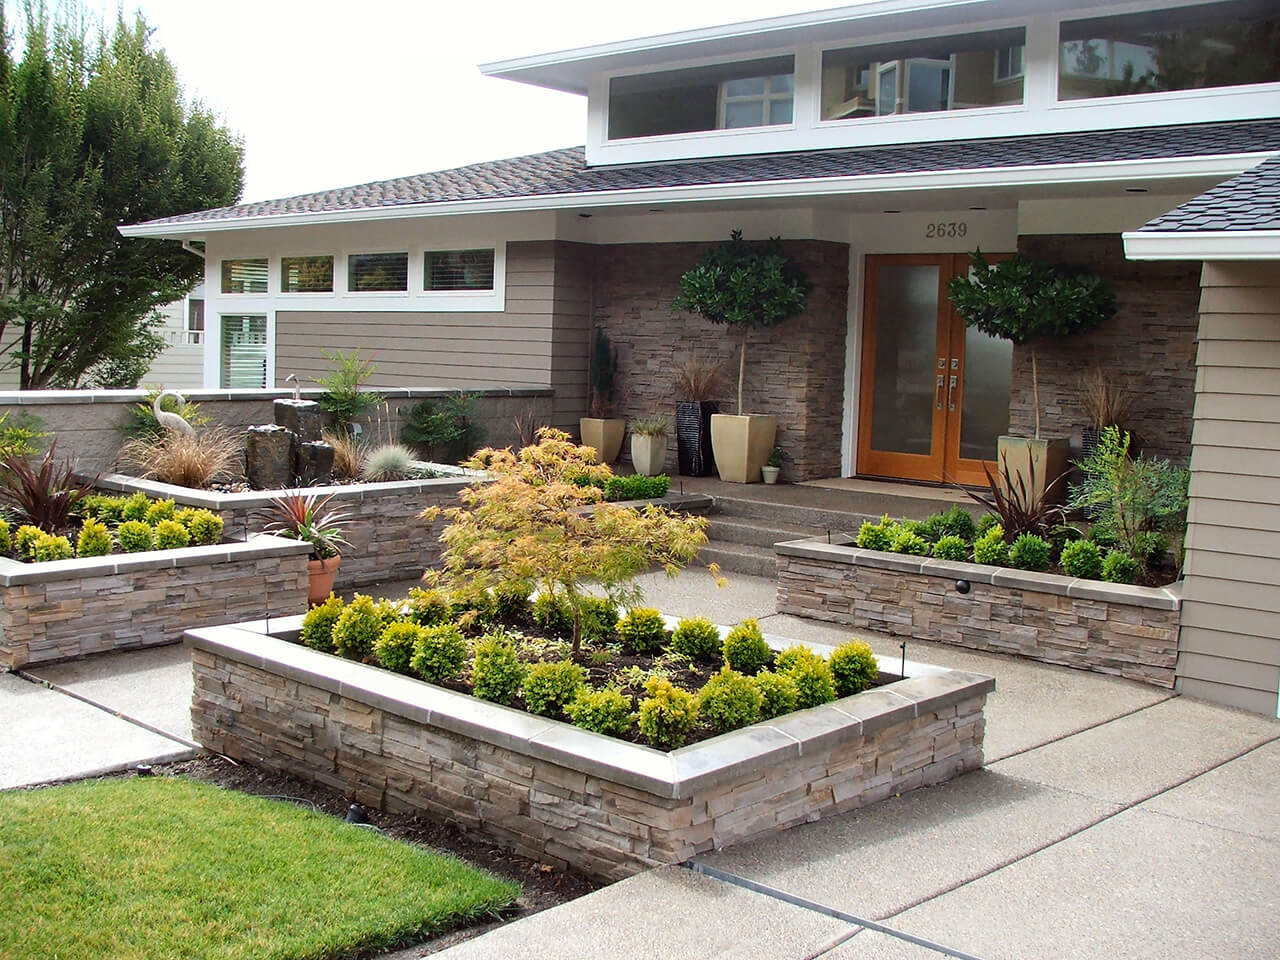 20 brilliant front garden landscaping ideas style motivation for Front landscaping plans